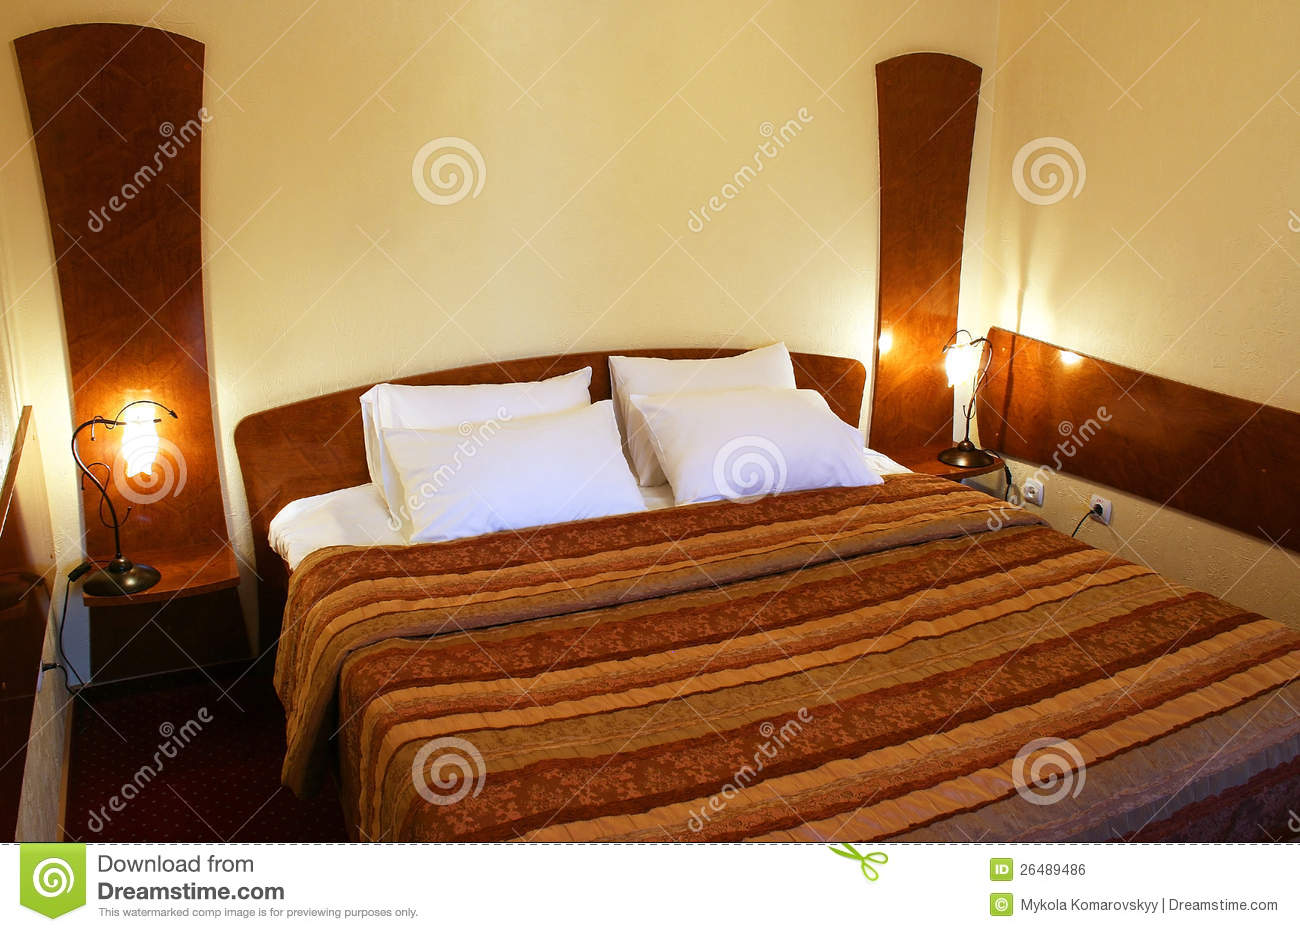 Bedroom royalty free stock image image 26489486 for Well decorated bedroom